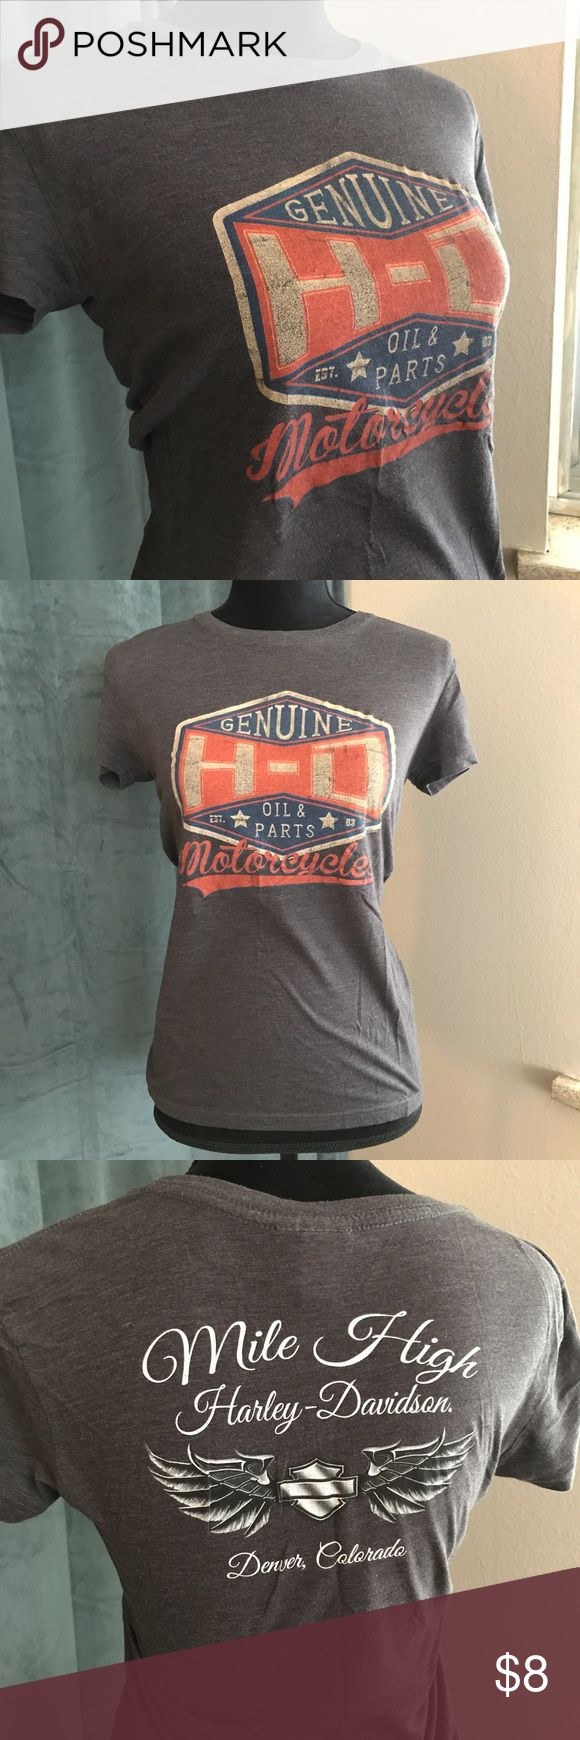 Harley Davidson Grey Women's Tee. Denver, CO Grey Harley Davidson Tee in great shape. Lightly worn with no holes, damages or stains.  Tag says Medium. Fits like small  Representing Mile High Harley Davidson in Denver, CO Harley-Davidson Tops Tees - Short Sleeve